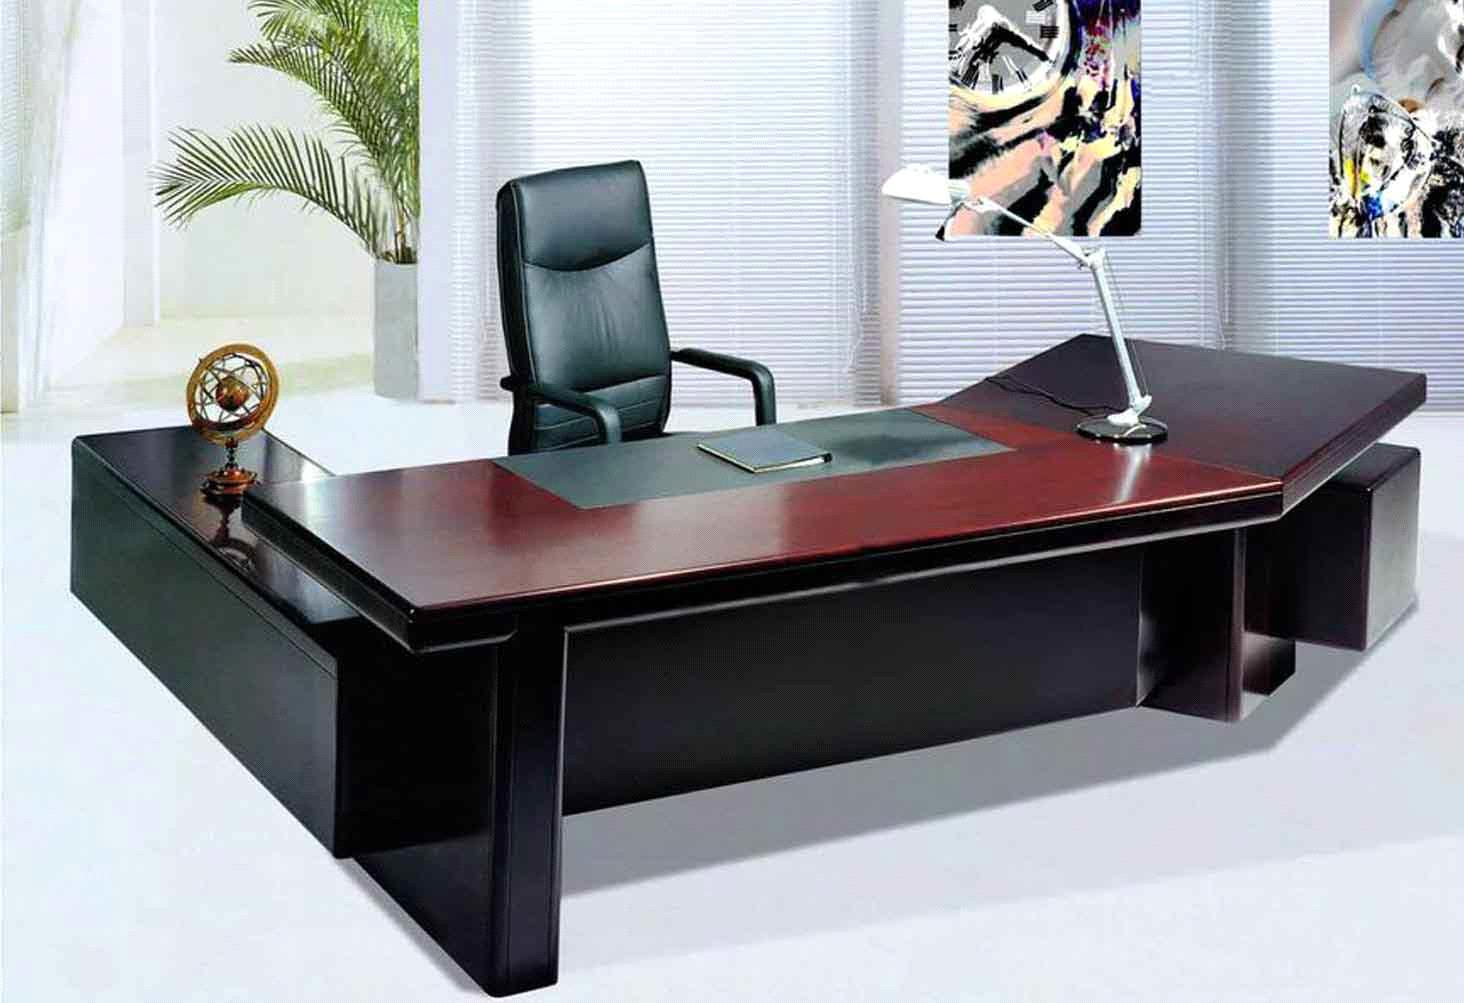 pinterest executive home desks desk about furniture images elegant gorgeous office on